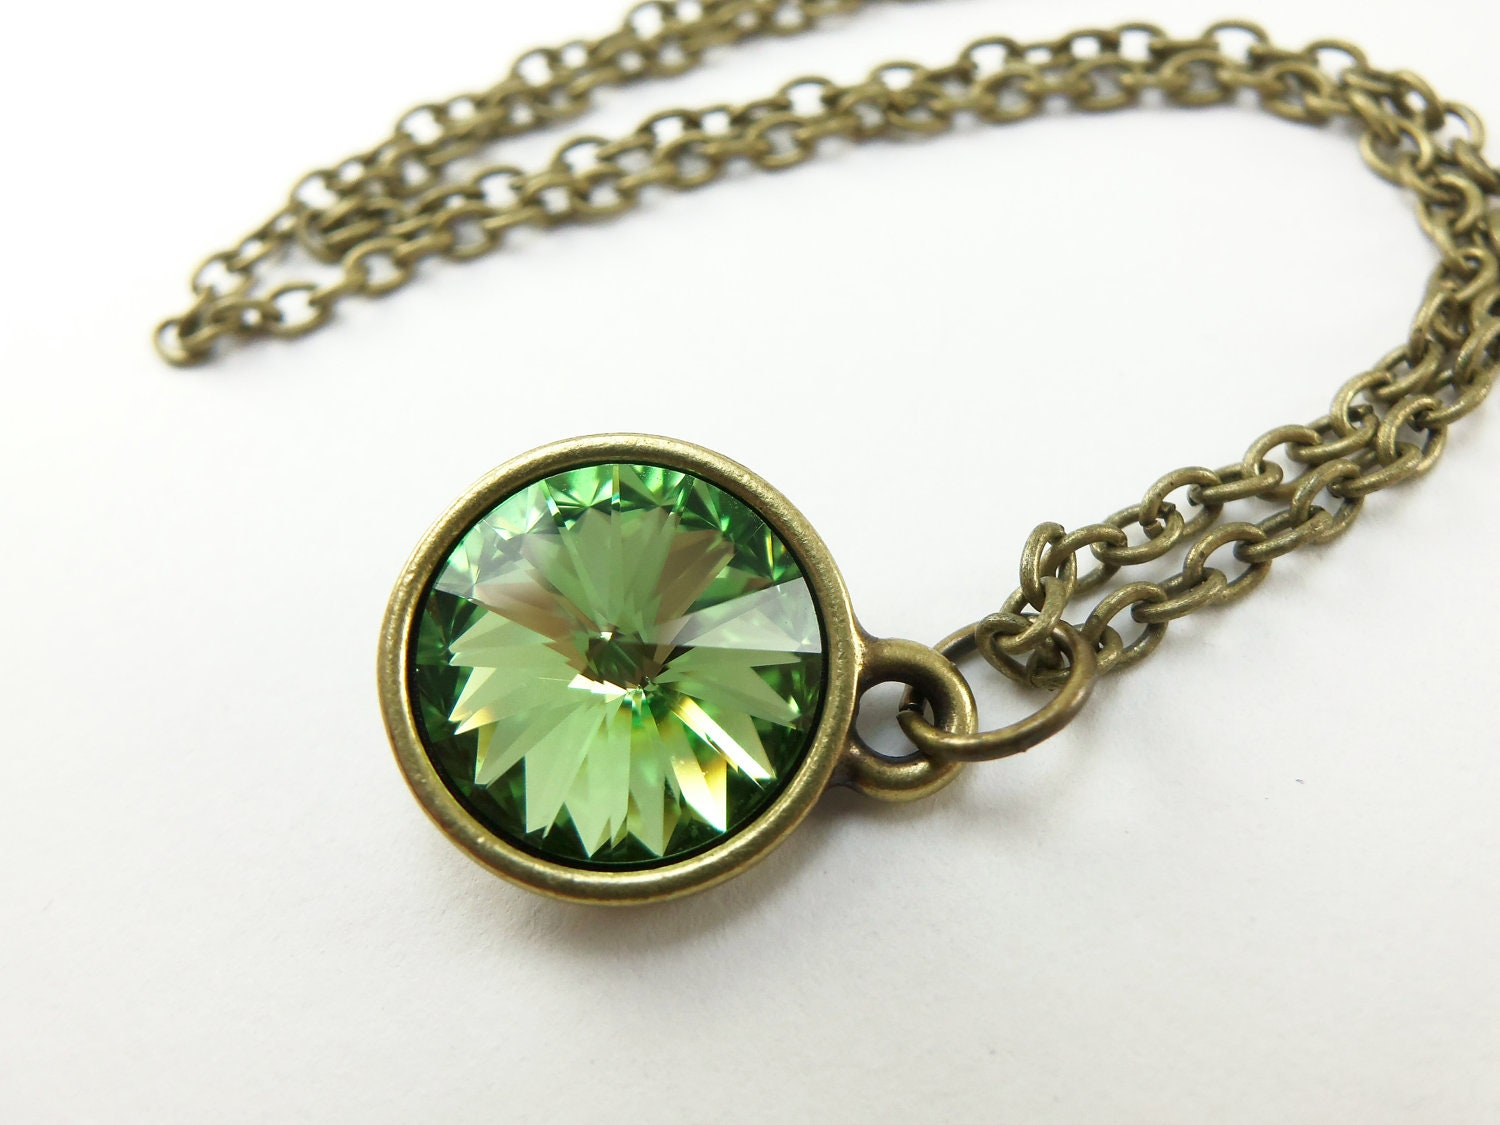 Peridot necklace august birthstone necklace green by jalycme